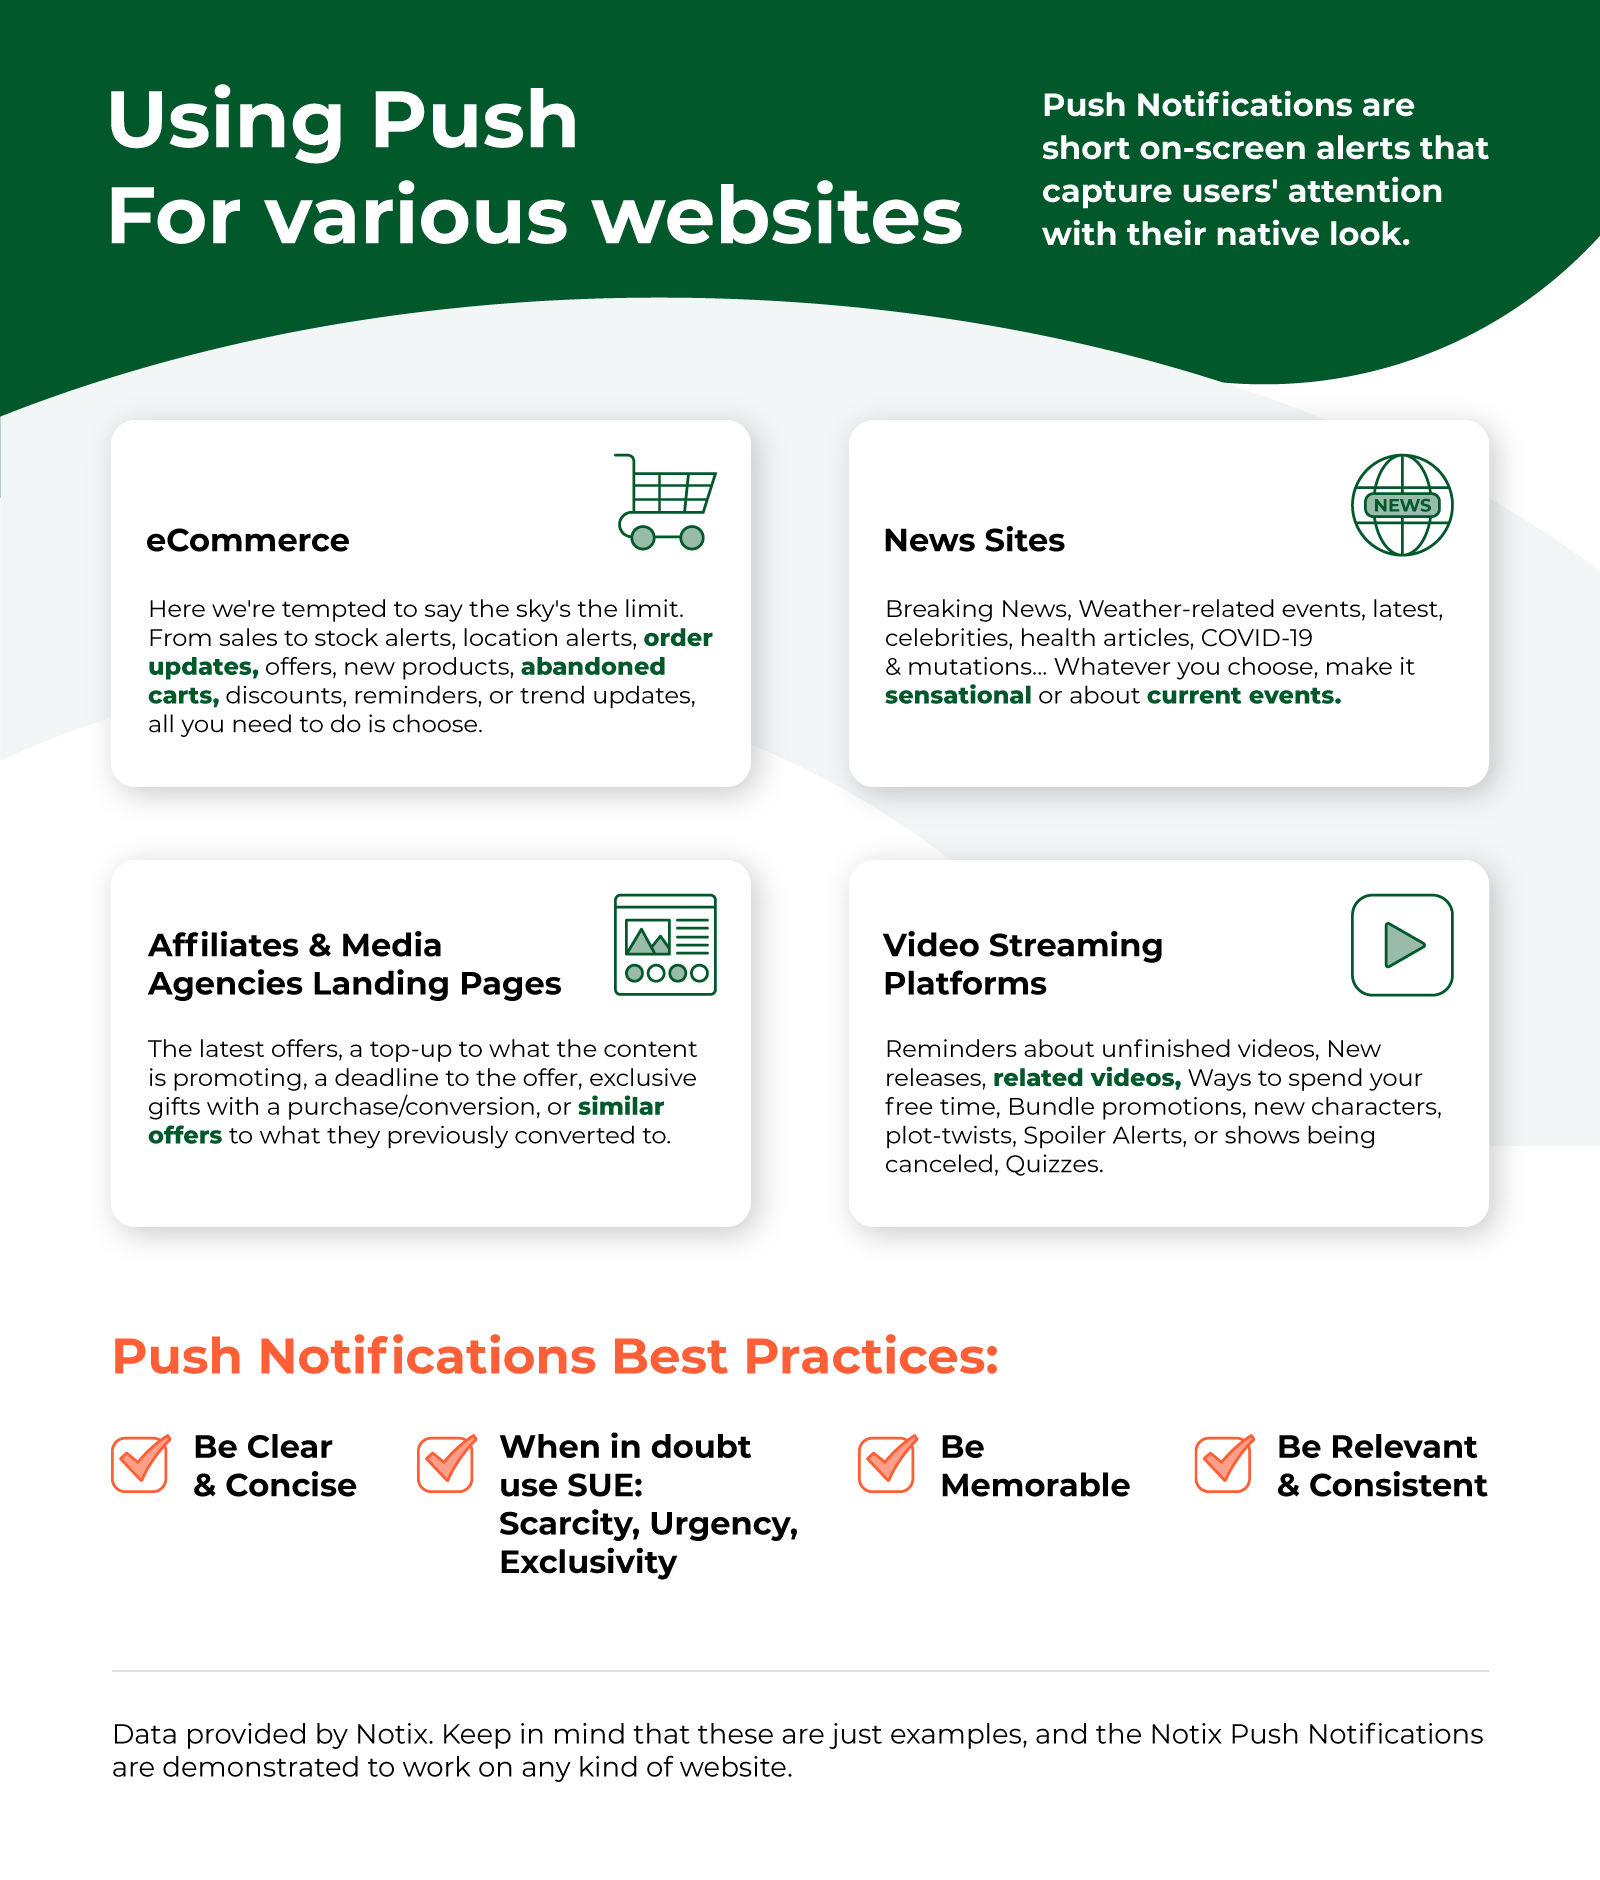 Where can you use Push Notifications